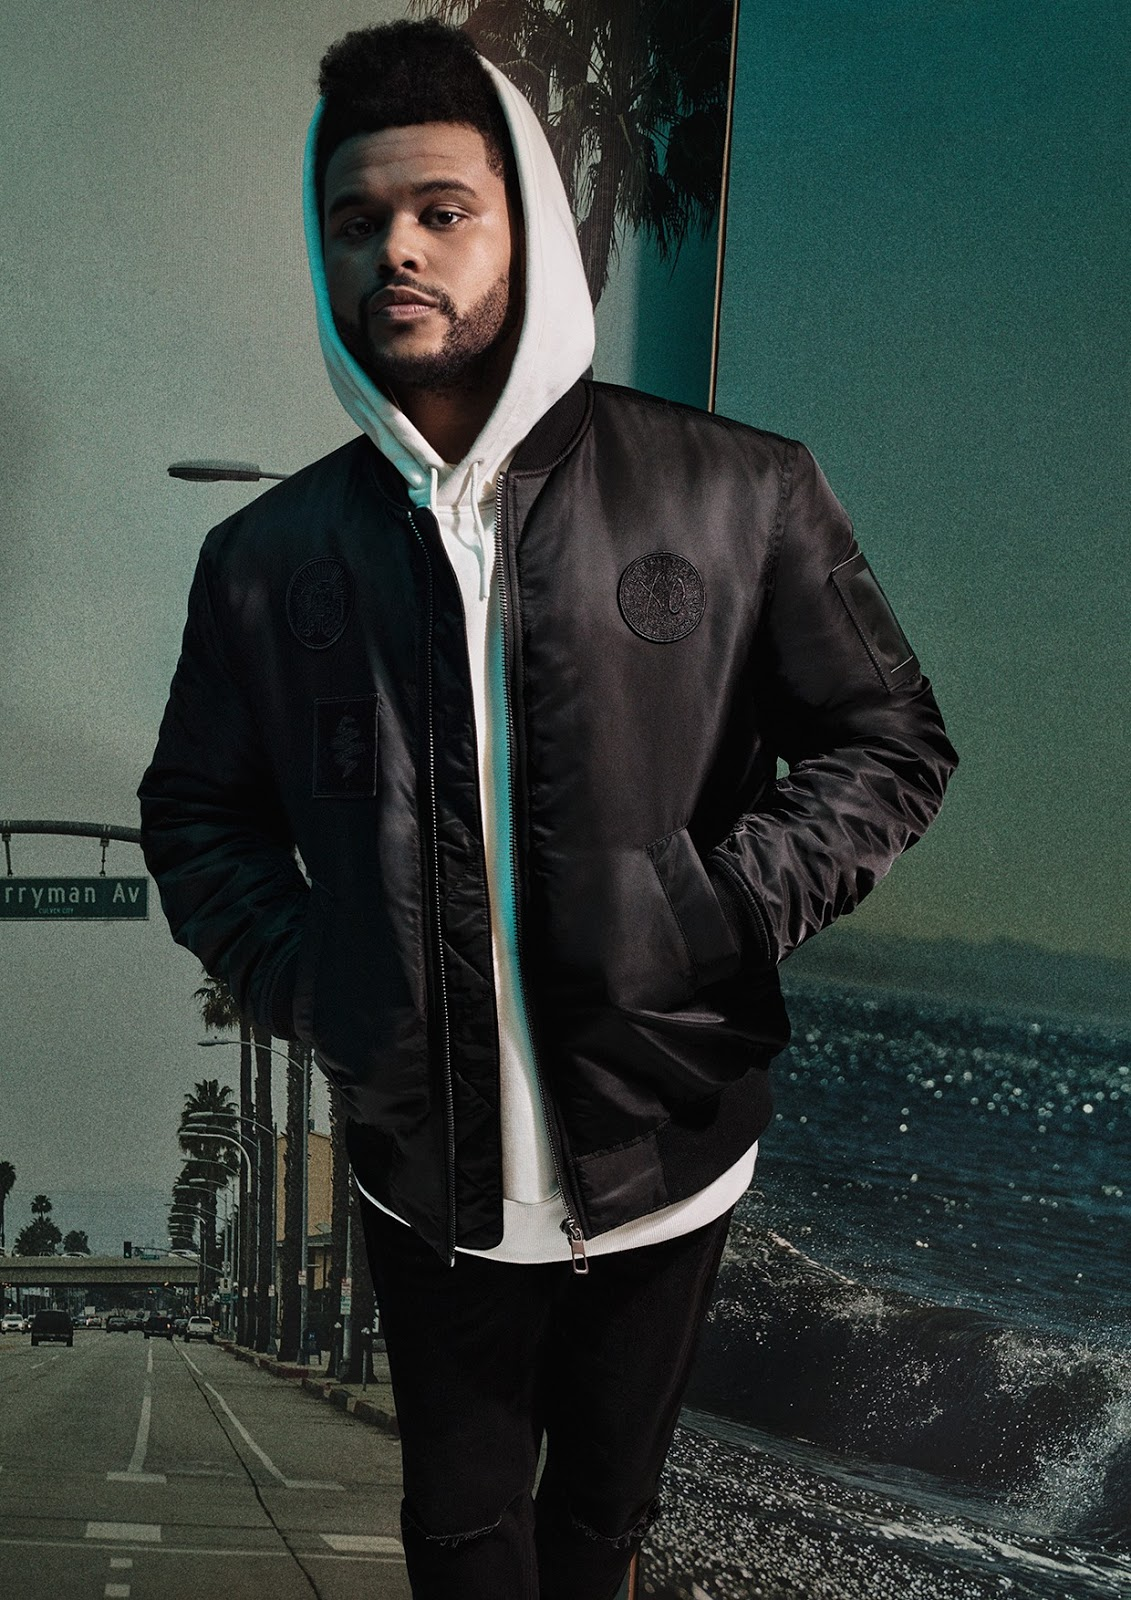 H&M x The Weeknd Fall/Winter 2017 Essentials Collection